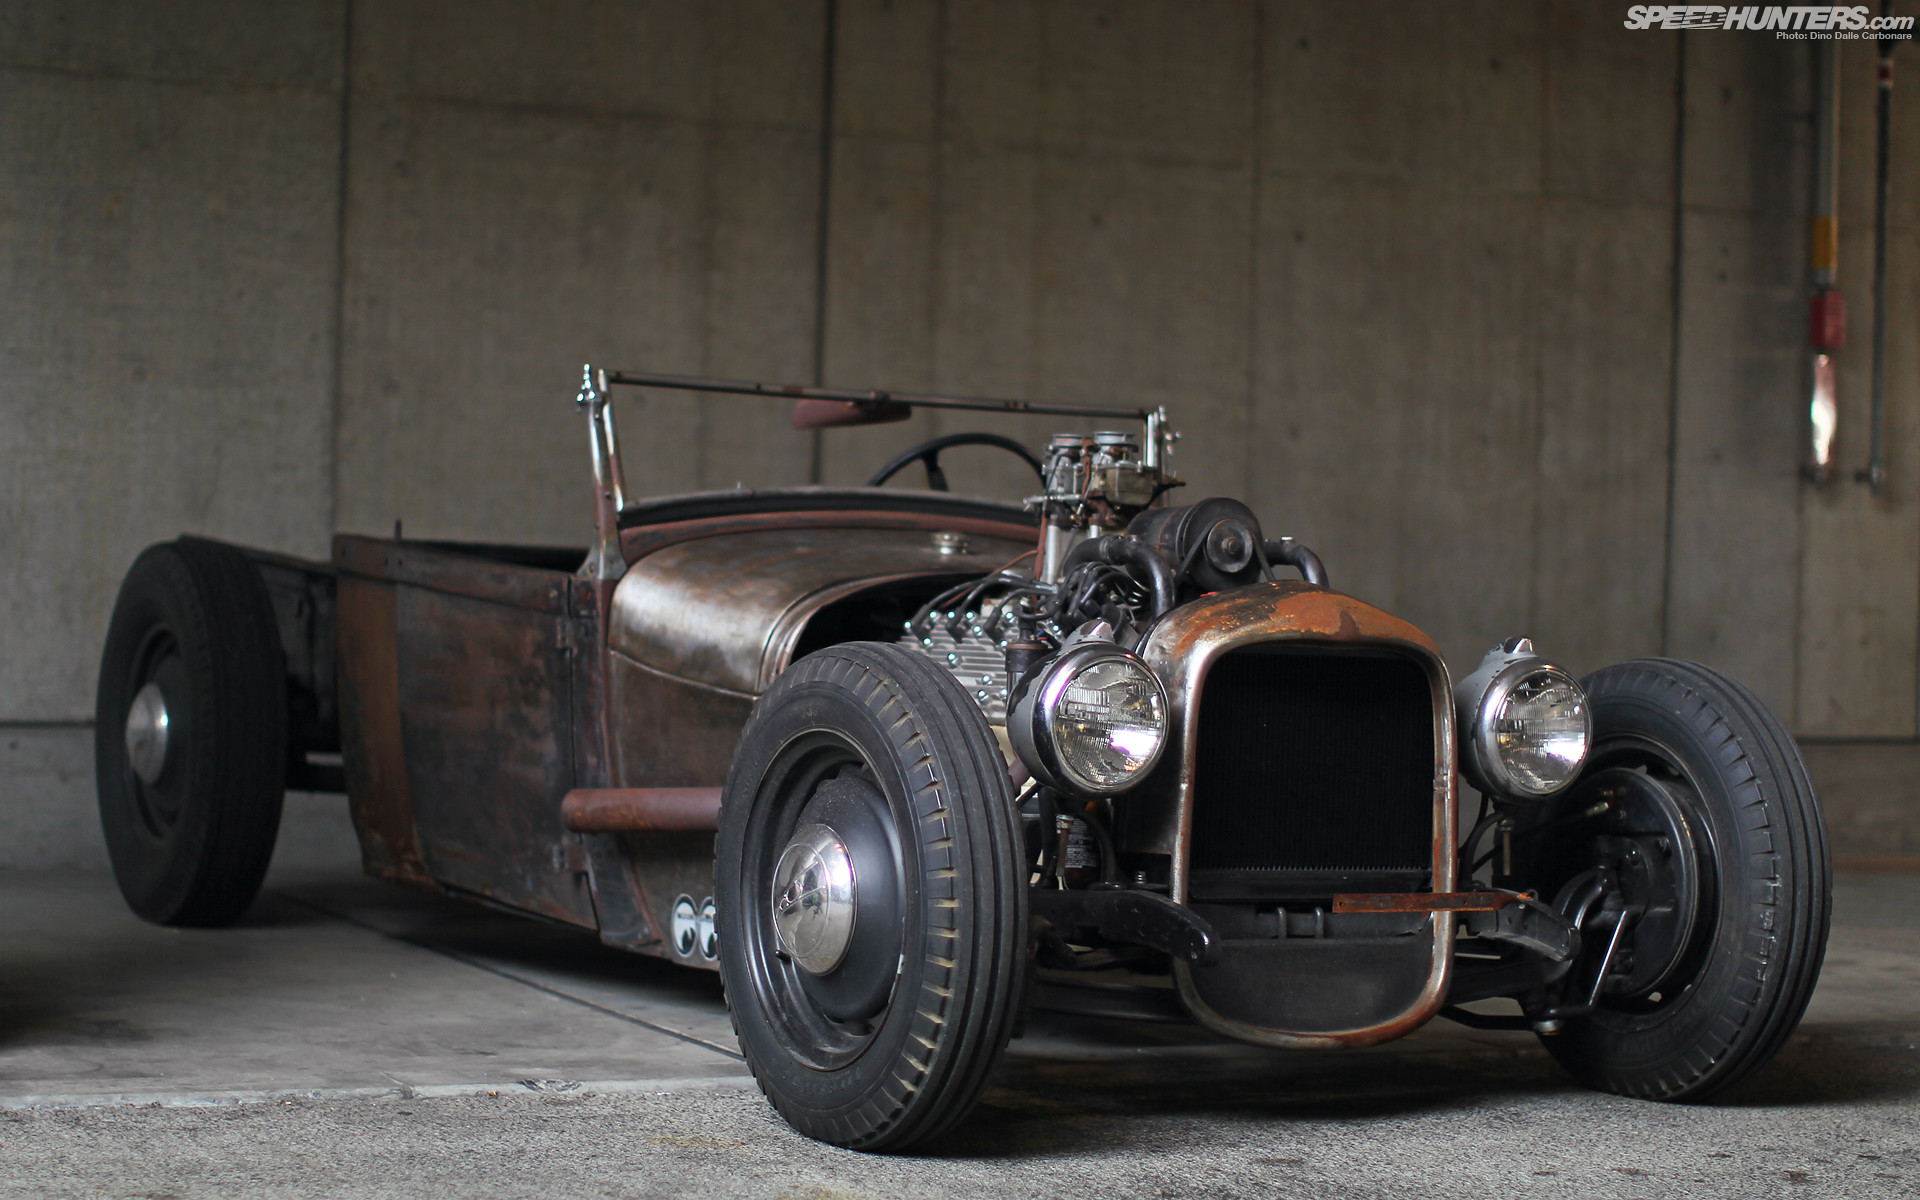 1920x1200 Hotrod Hot rods and Custom cars. Sometimes classic cars but mostly early  hotrods and rat rods or custom cars like lowriders.